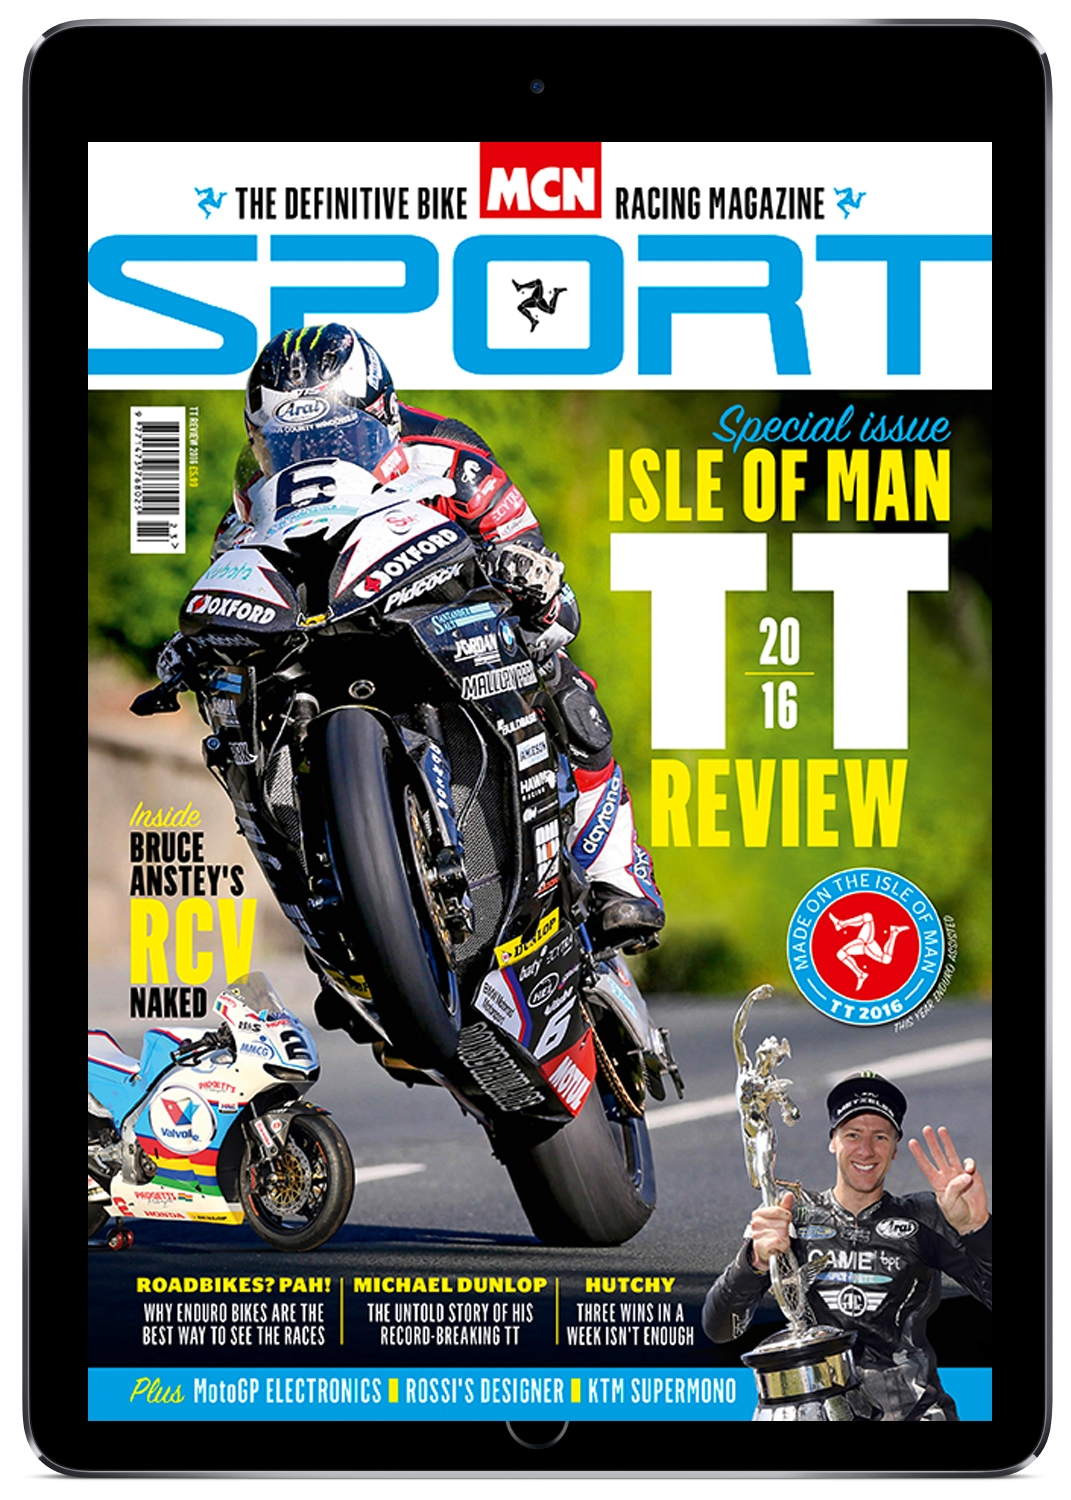 MCN Sport digital edition is available on iPad and Android.